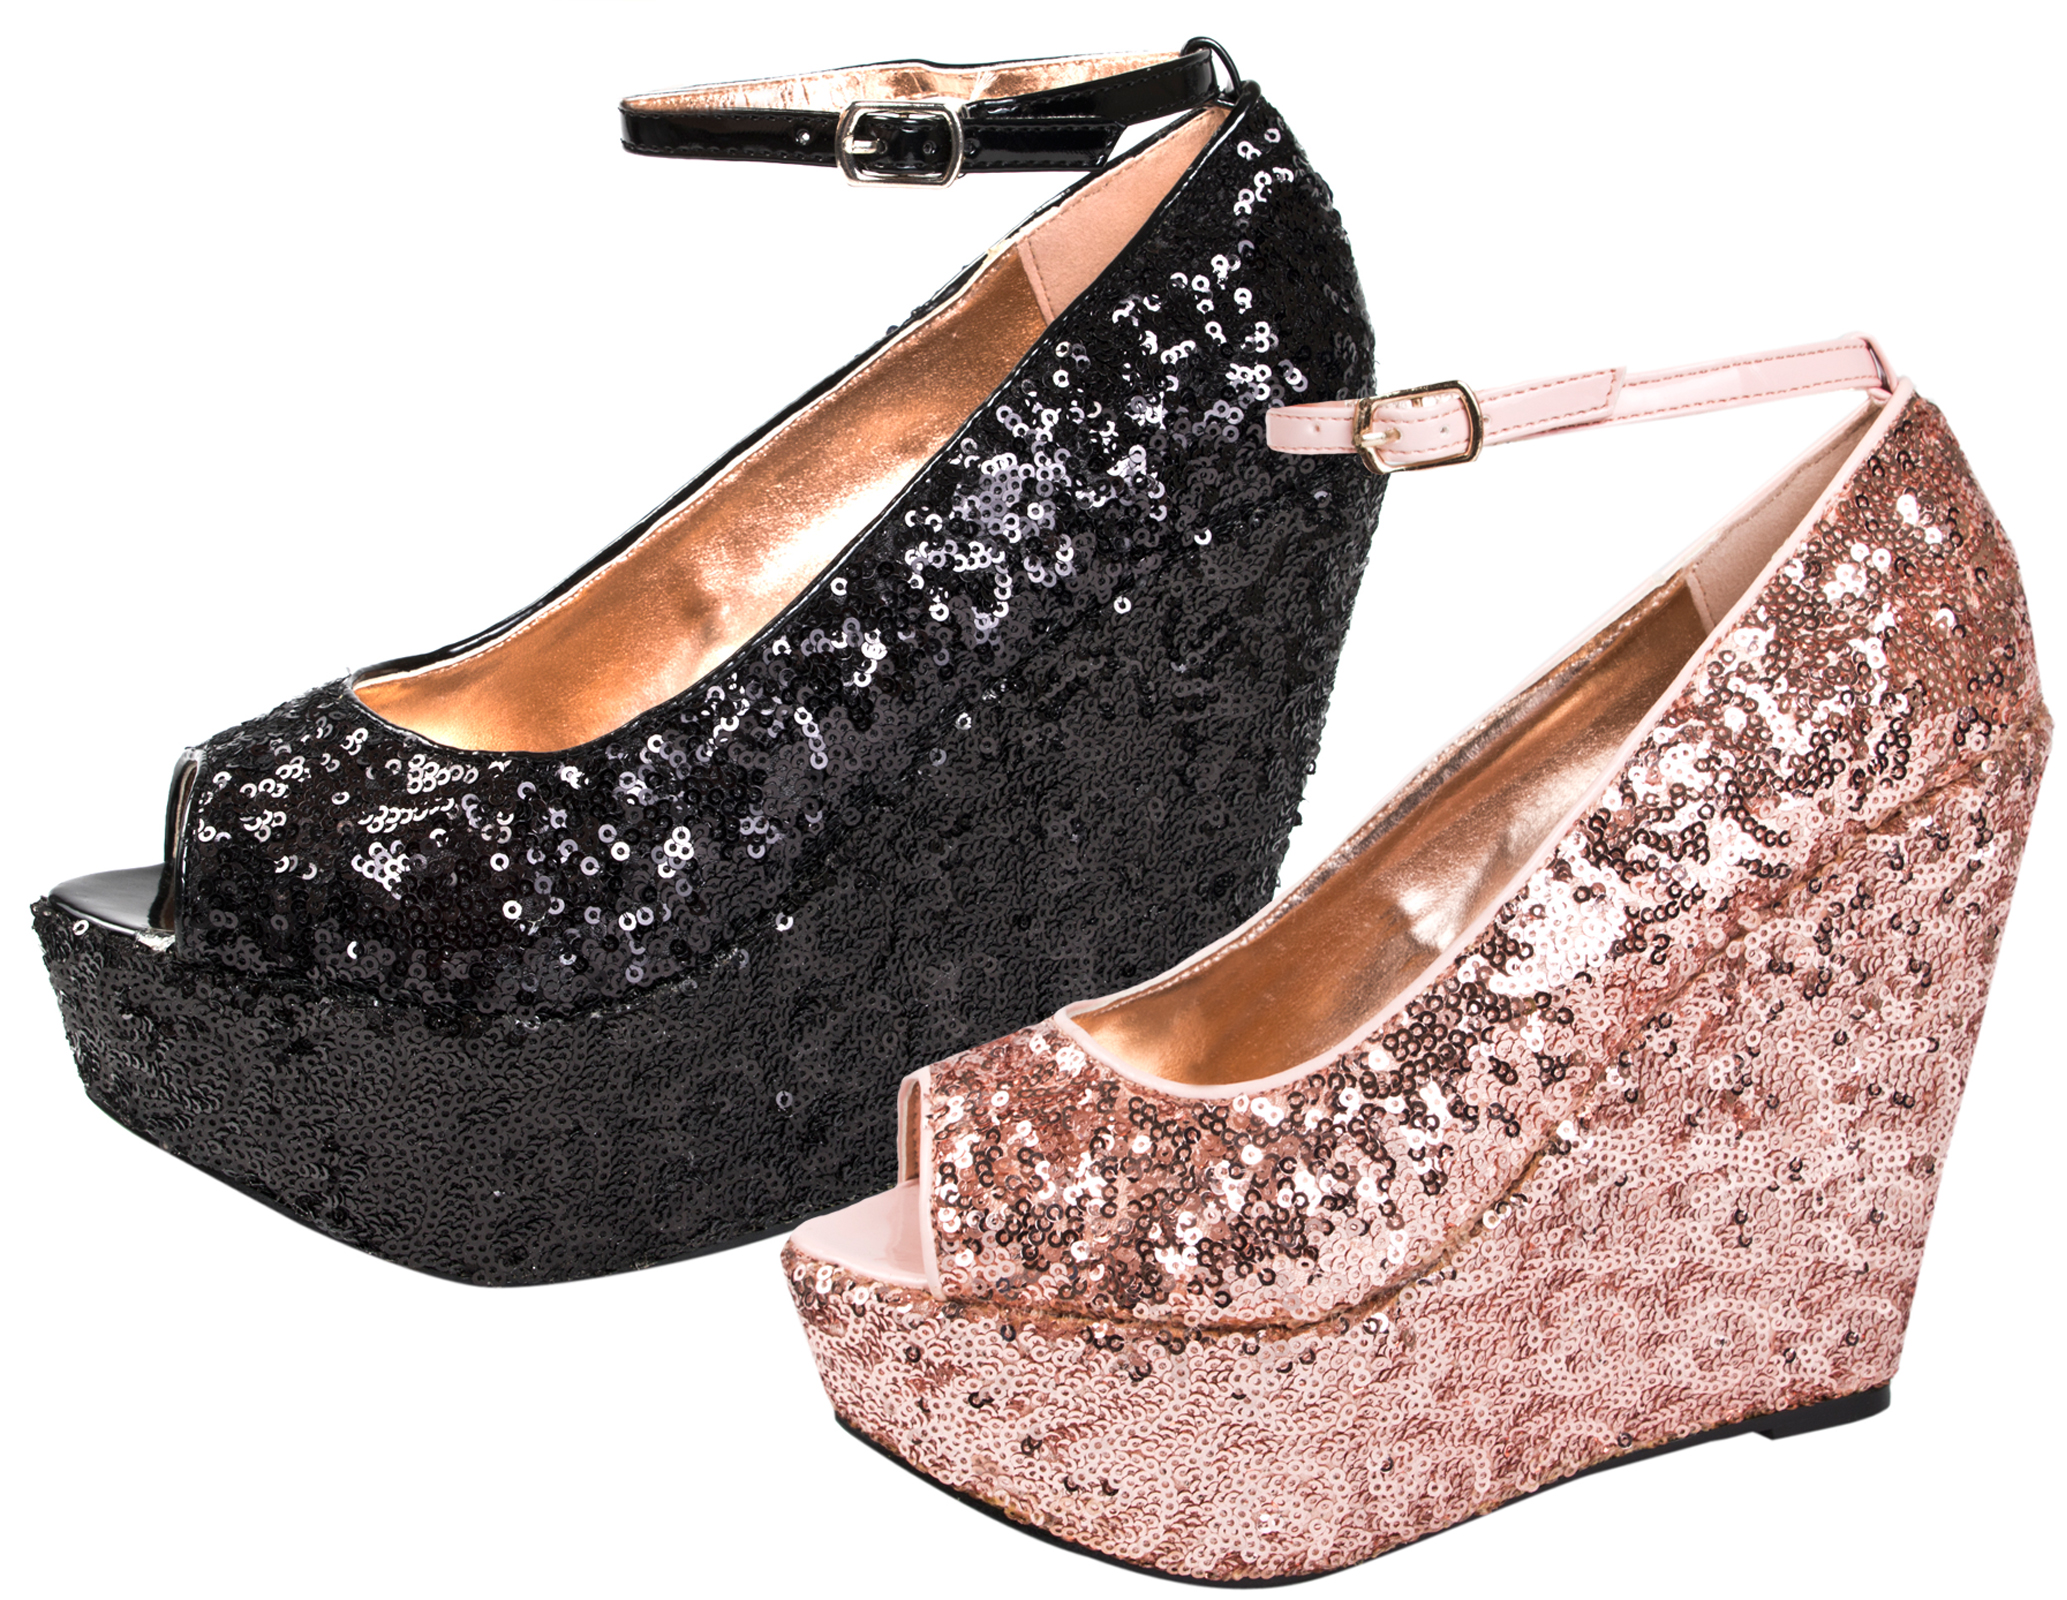 014135dd6345 WOMENS PARTY WEDGE PLATFORM PEEPTOE ANKLE STRAP LADIES SEQUIN WEDGES SHOES  3 - 8